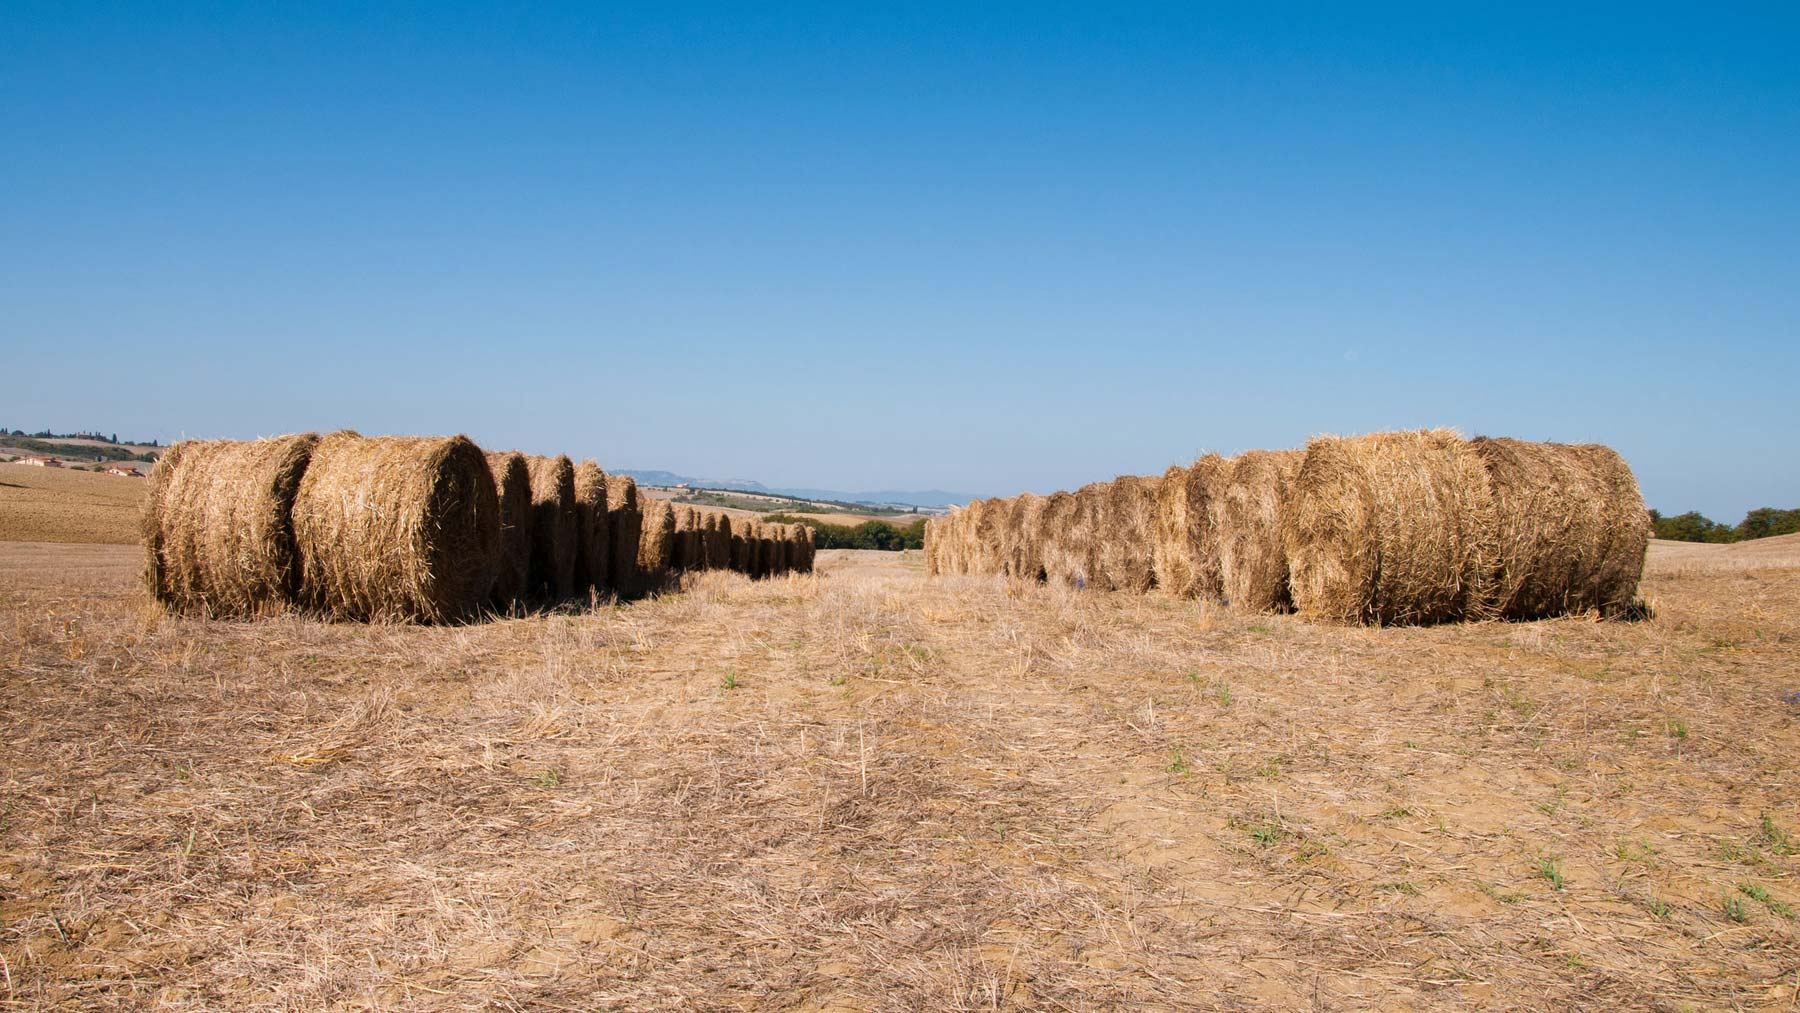 Crete Senesi: what they are and what to see